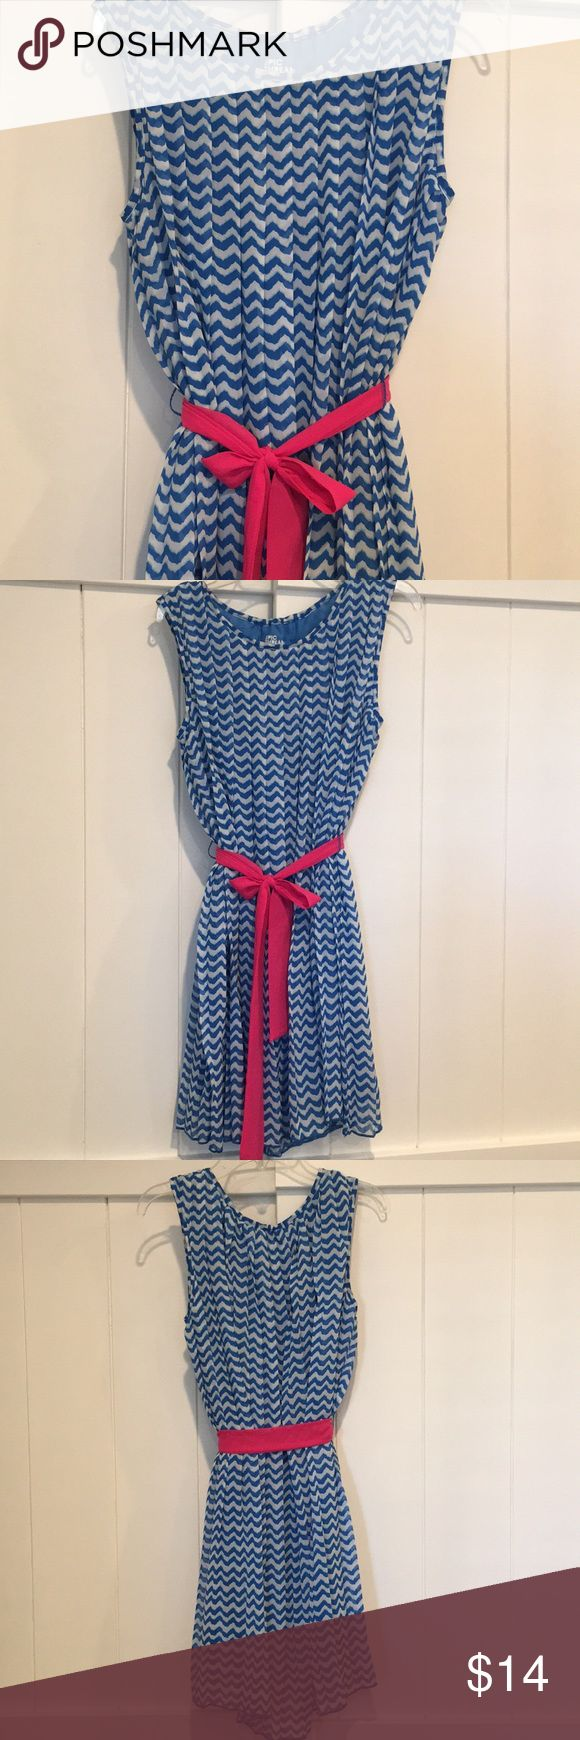 Girls Blue Chevron Dress with Pink Sash Barely used dress in excellent condition! Pleated around the neckline and carries down through the bottom of the dress. The bright pink sash can be worn in front, back, side or you can remove it altogether. Built in slip. Length is approx 32 inches from top to bottom. Epic Threads Dresses